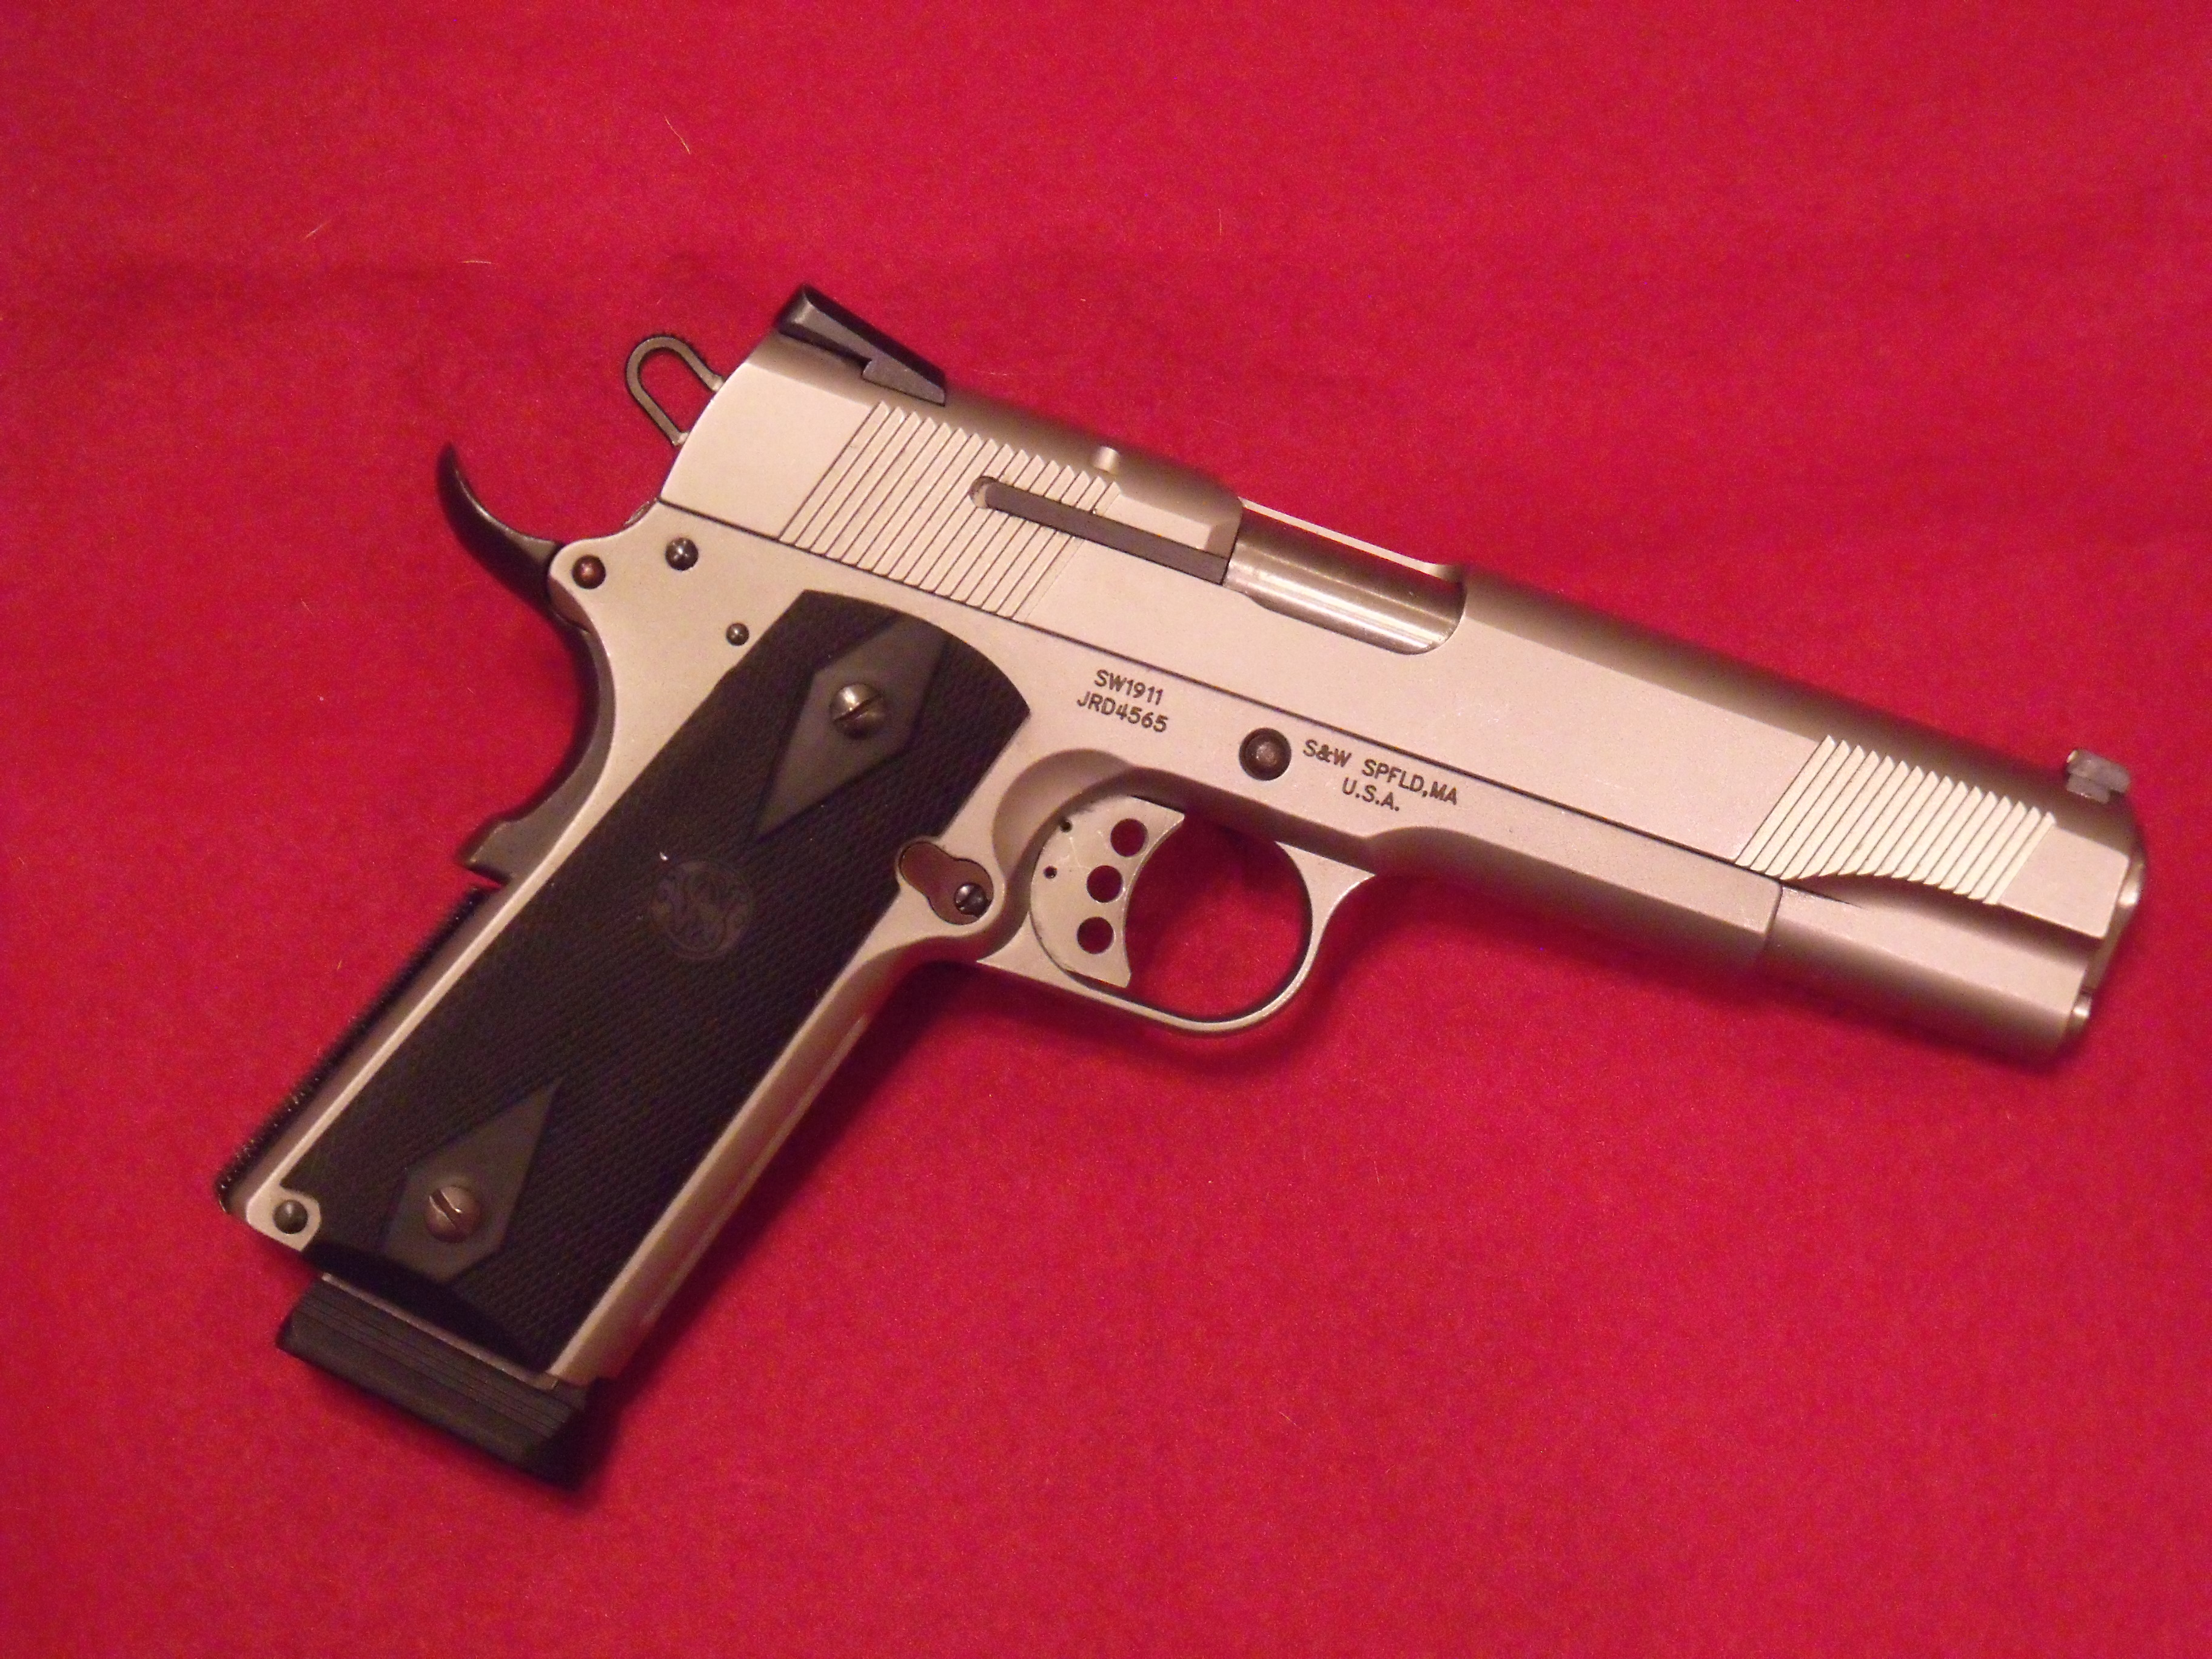 So    what's the REAL poop on S&W's 1911?